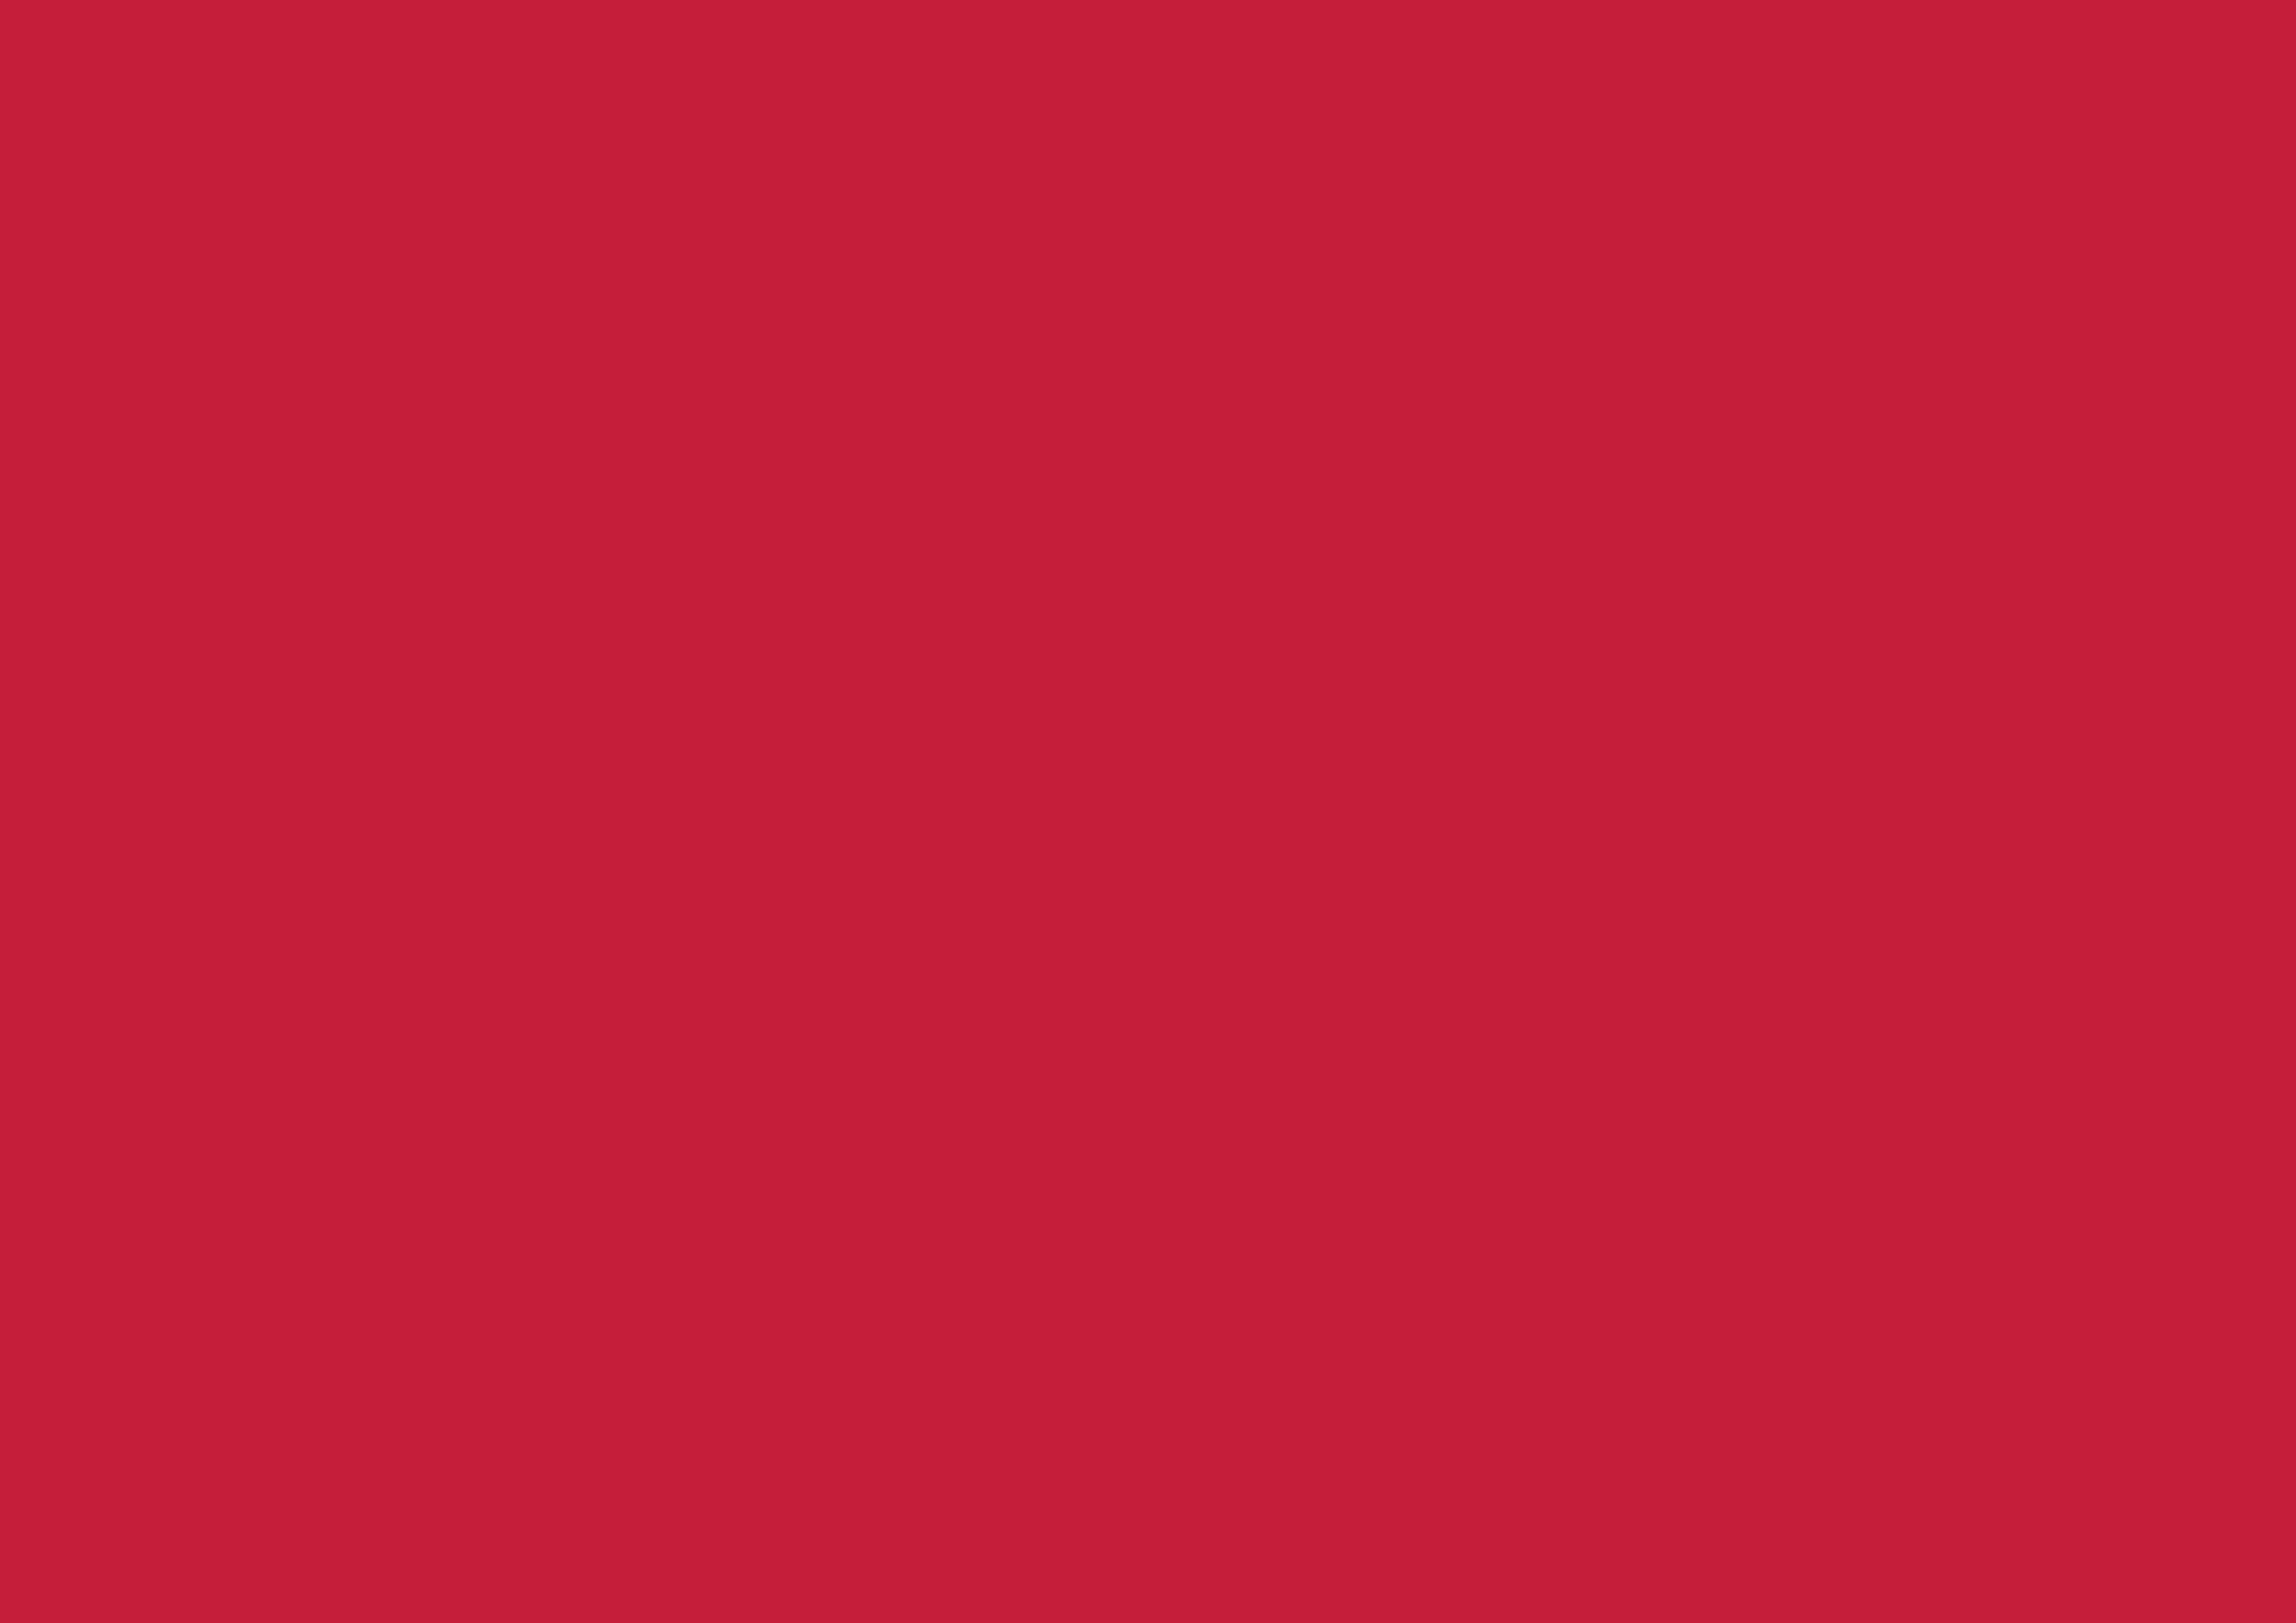 3508x2480 Cardinal Solid Color Background